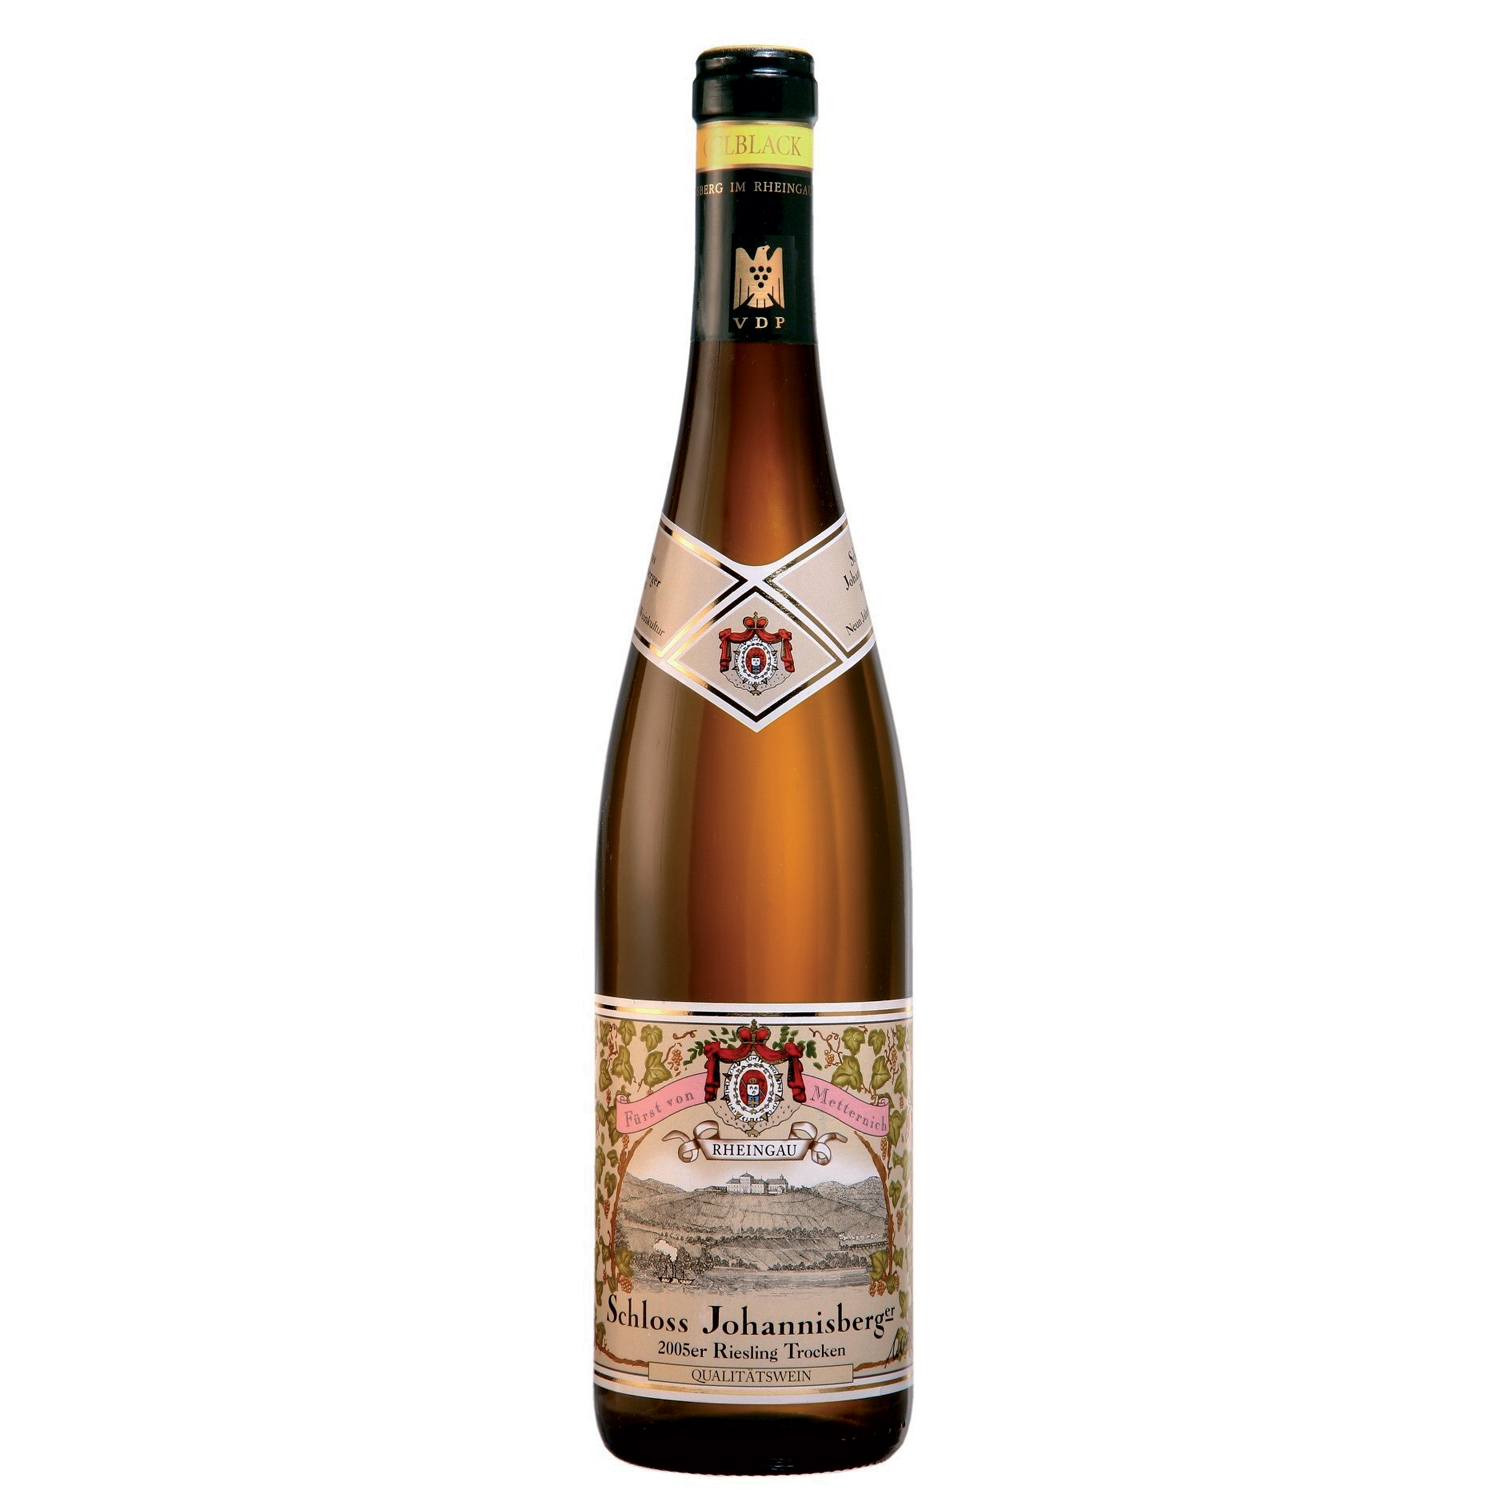 5 Great Bottles for Riesling Fanatics